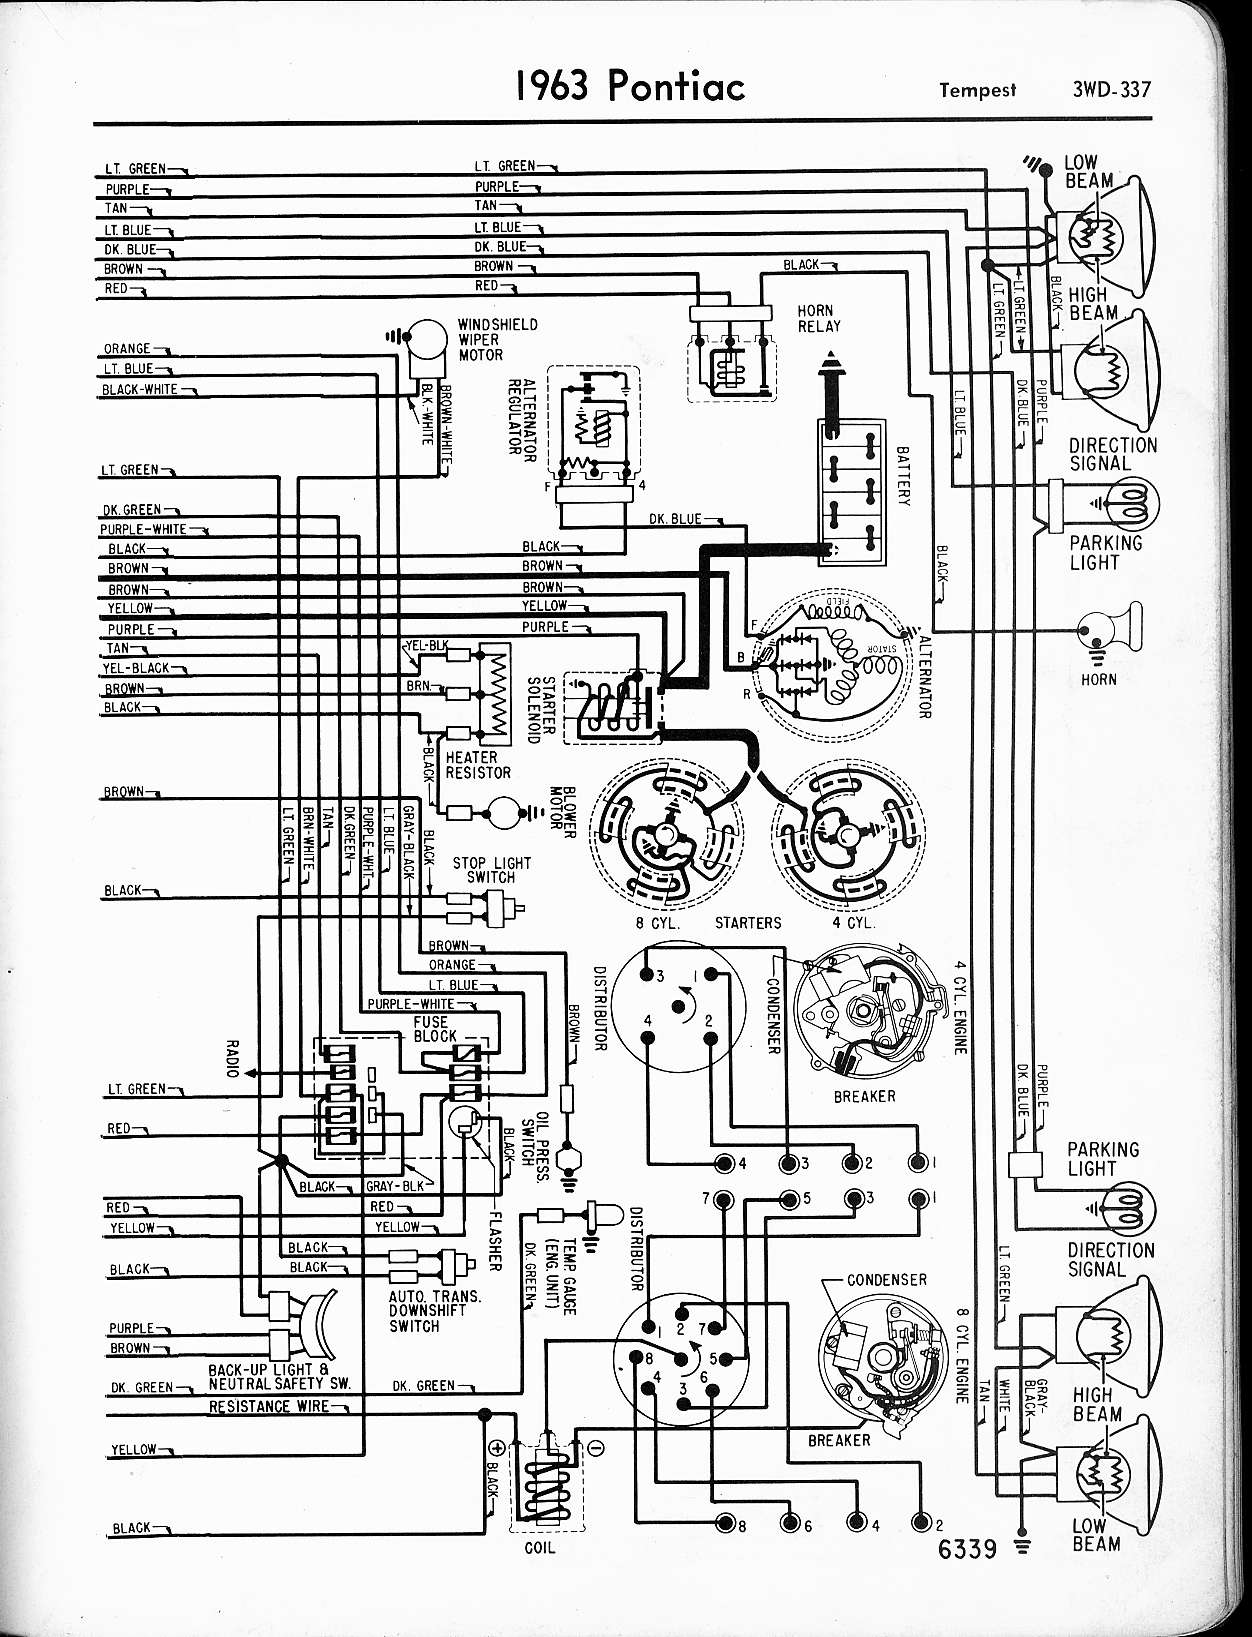 Pontiac Ignition Wiring Reinvent Your Diagram Basic Free Download Schematic 68 Gto Detailed Schematics Rh Lelandlutheran Com 2007 G5